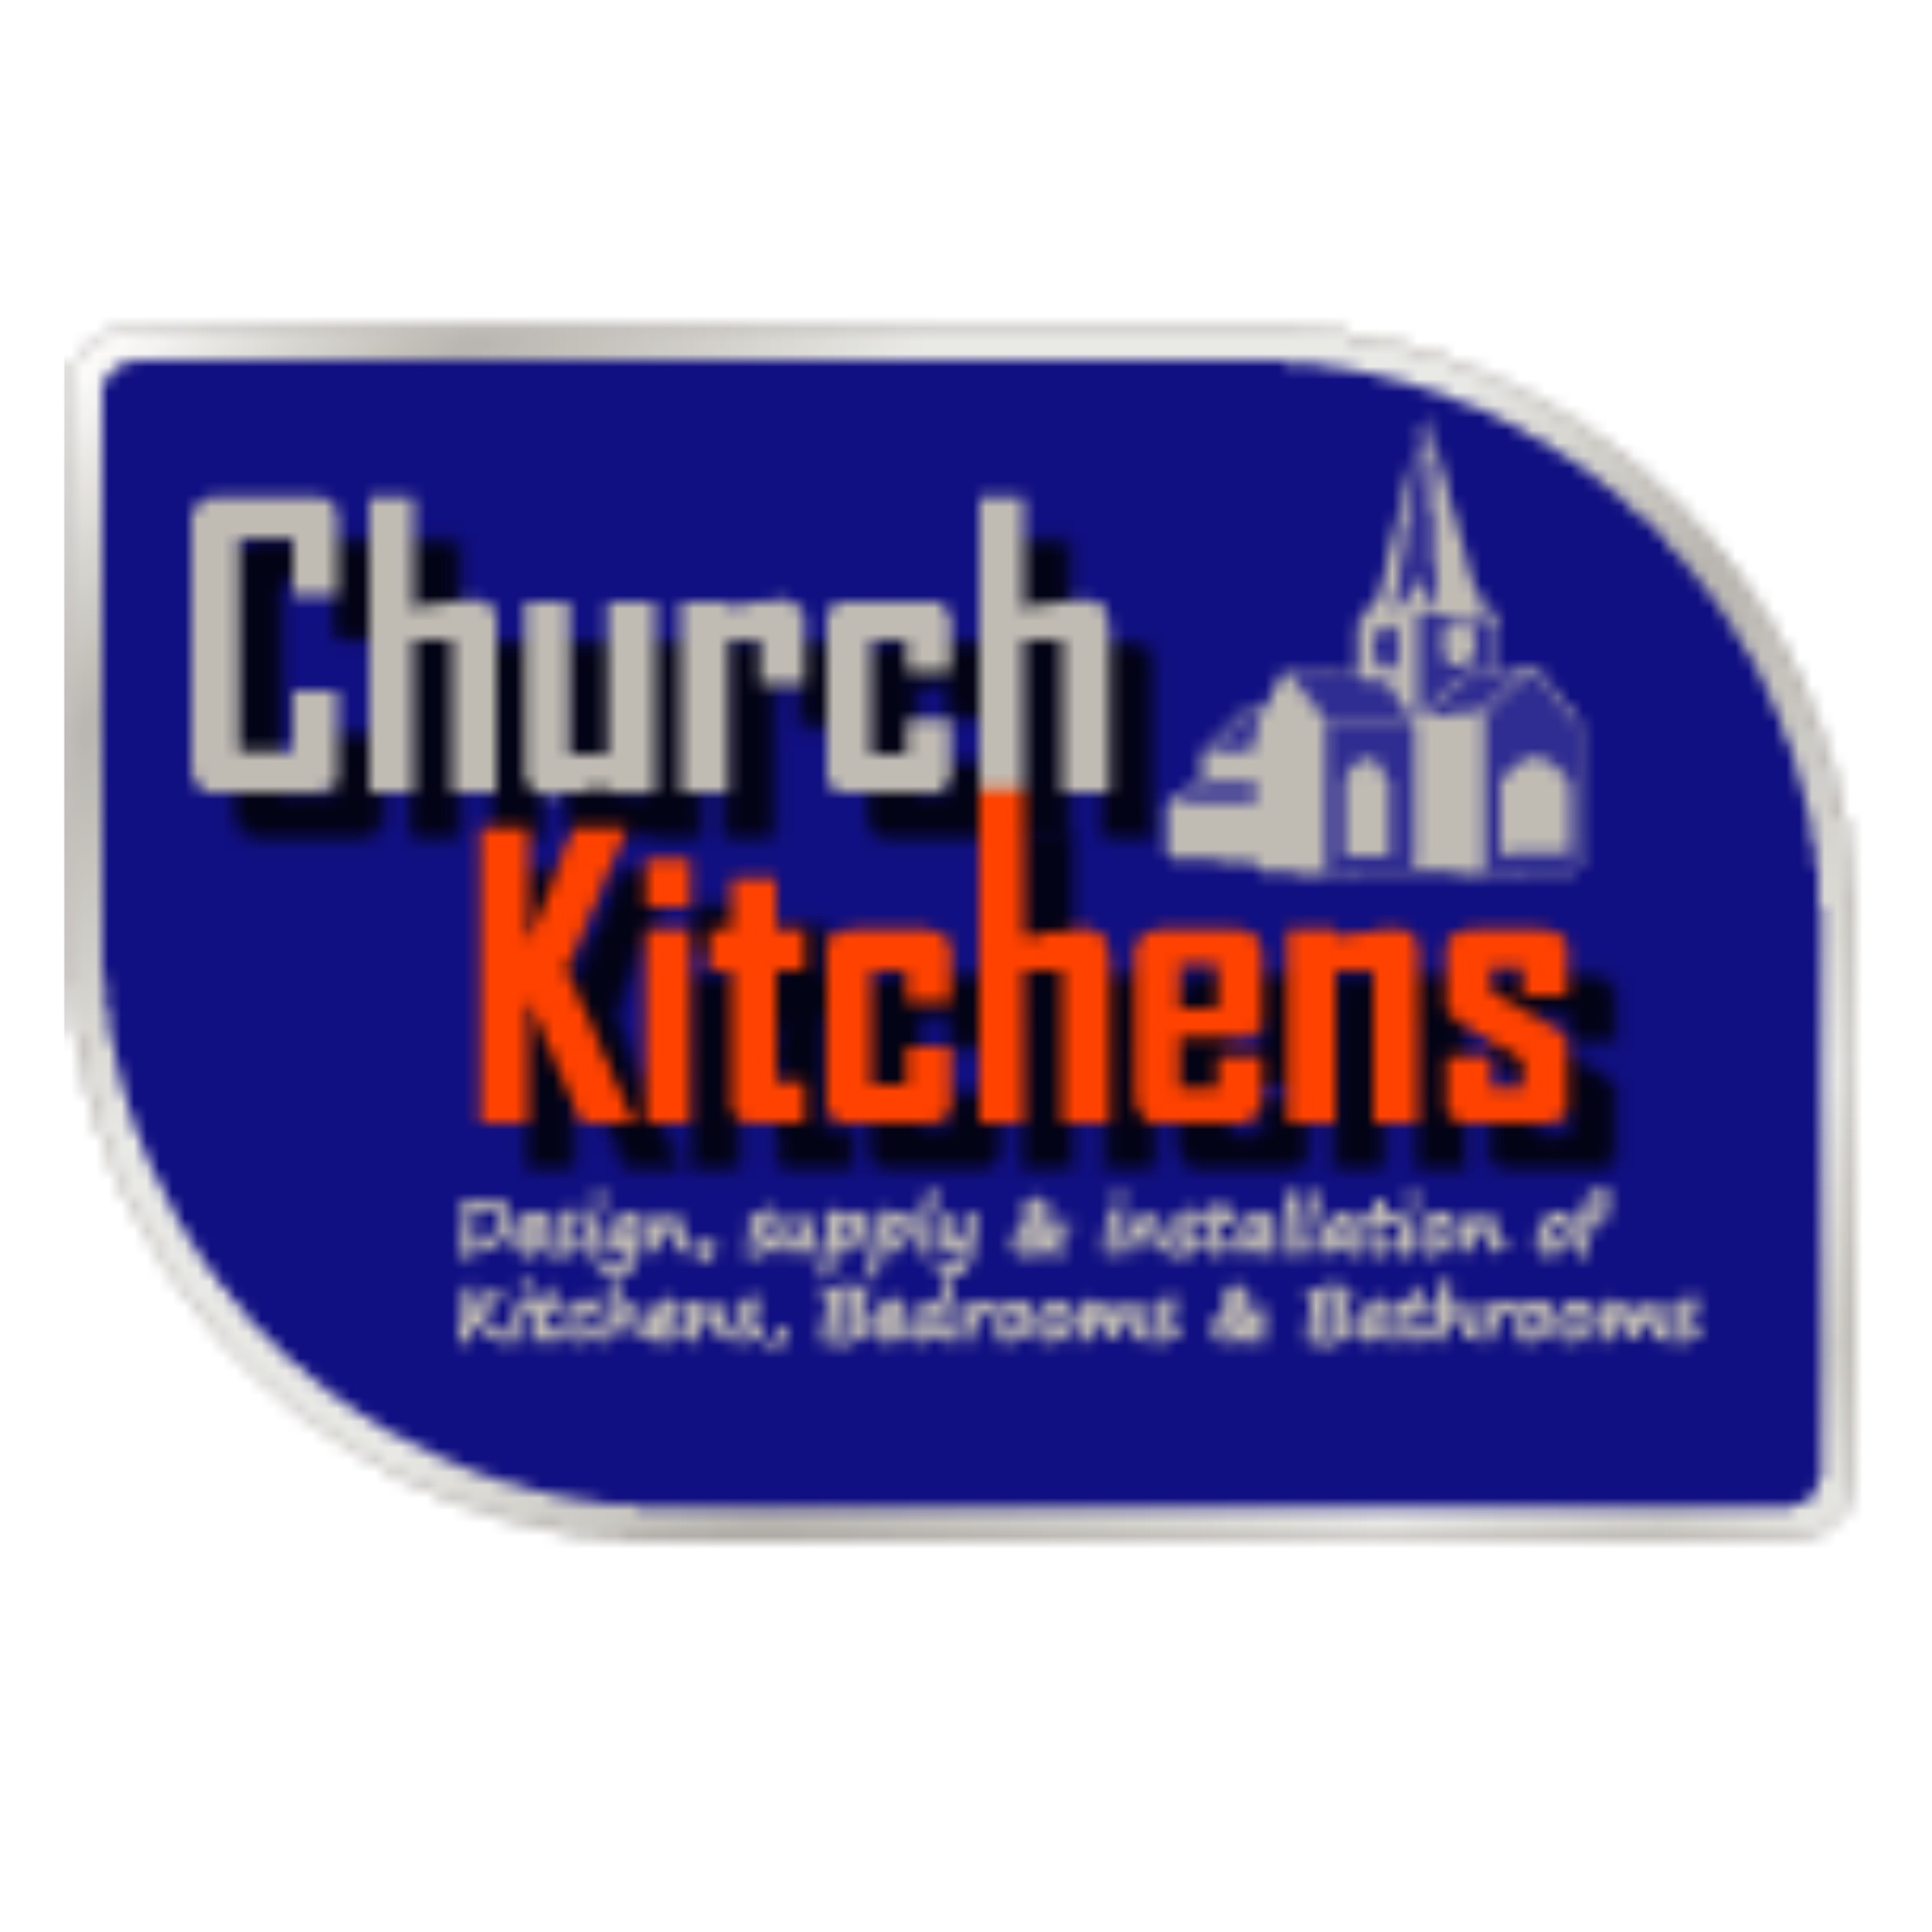 Church Kitchens S.L.